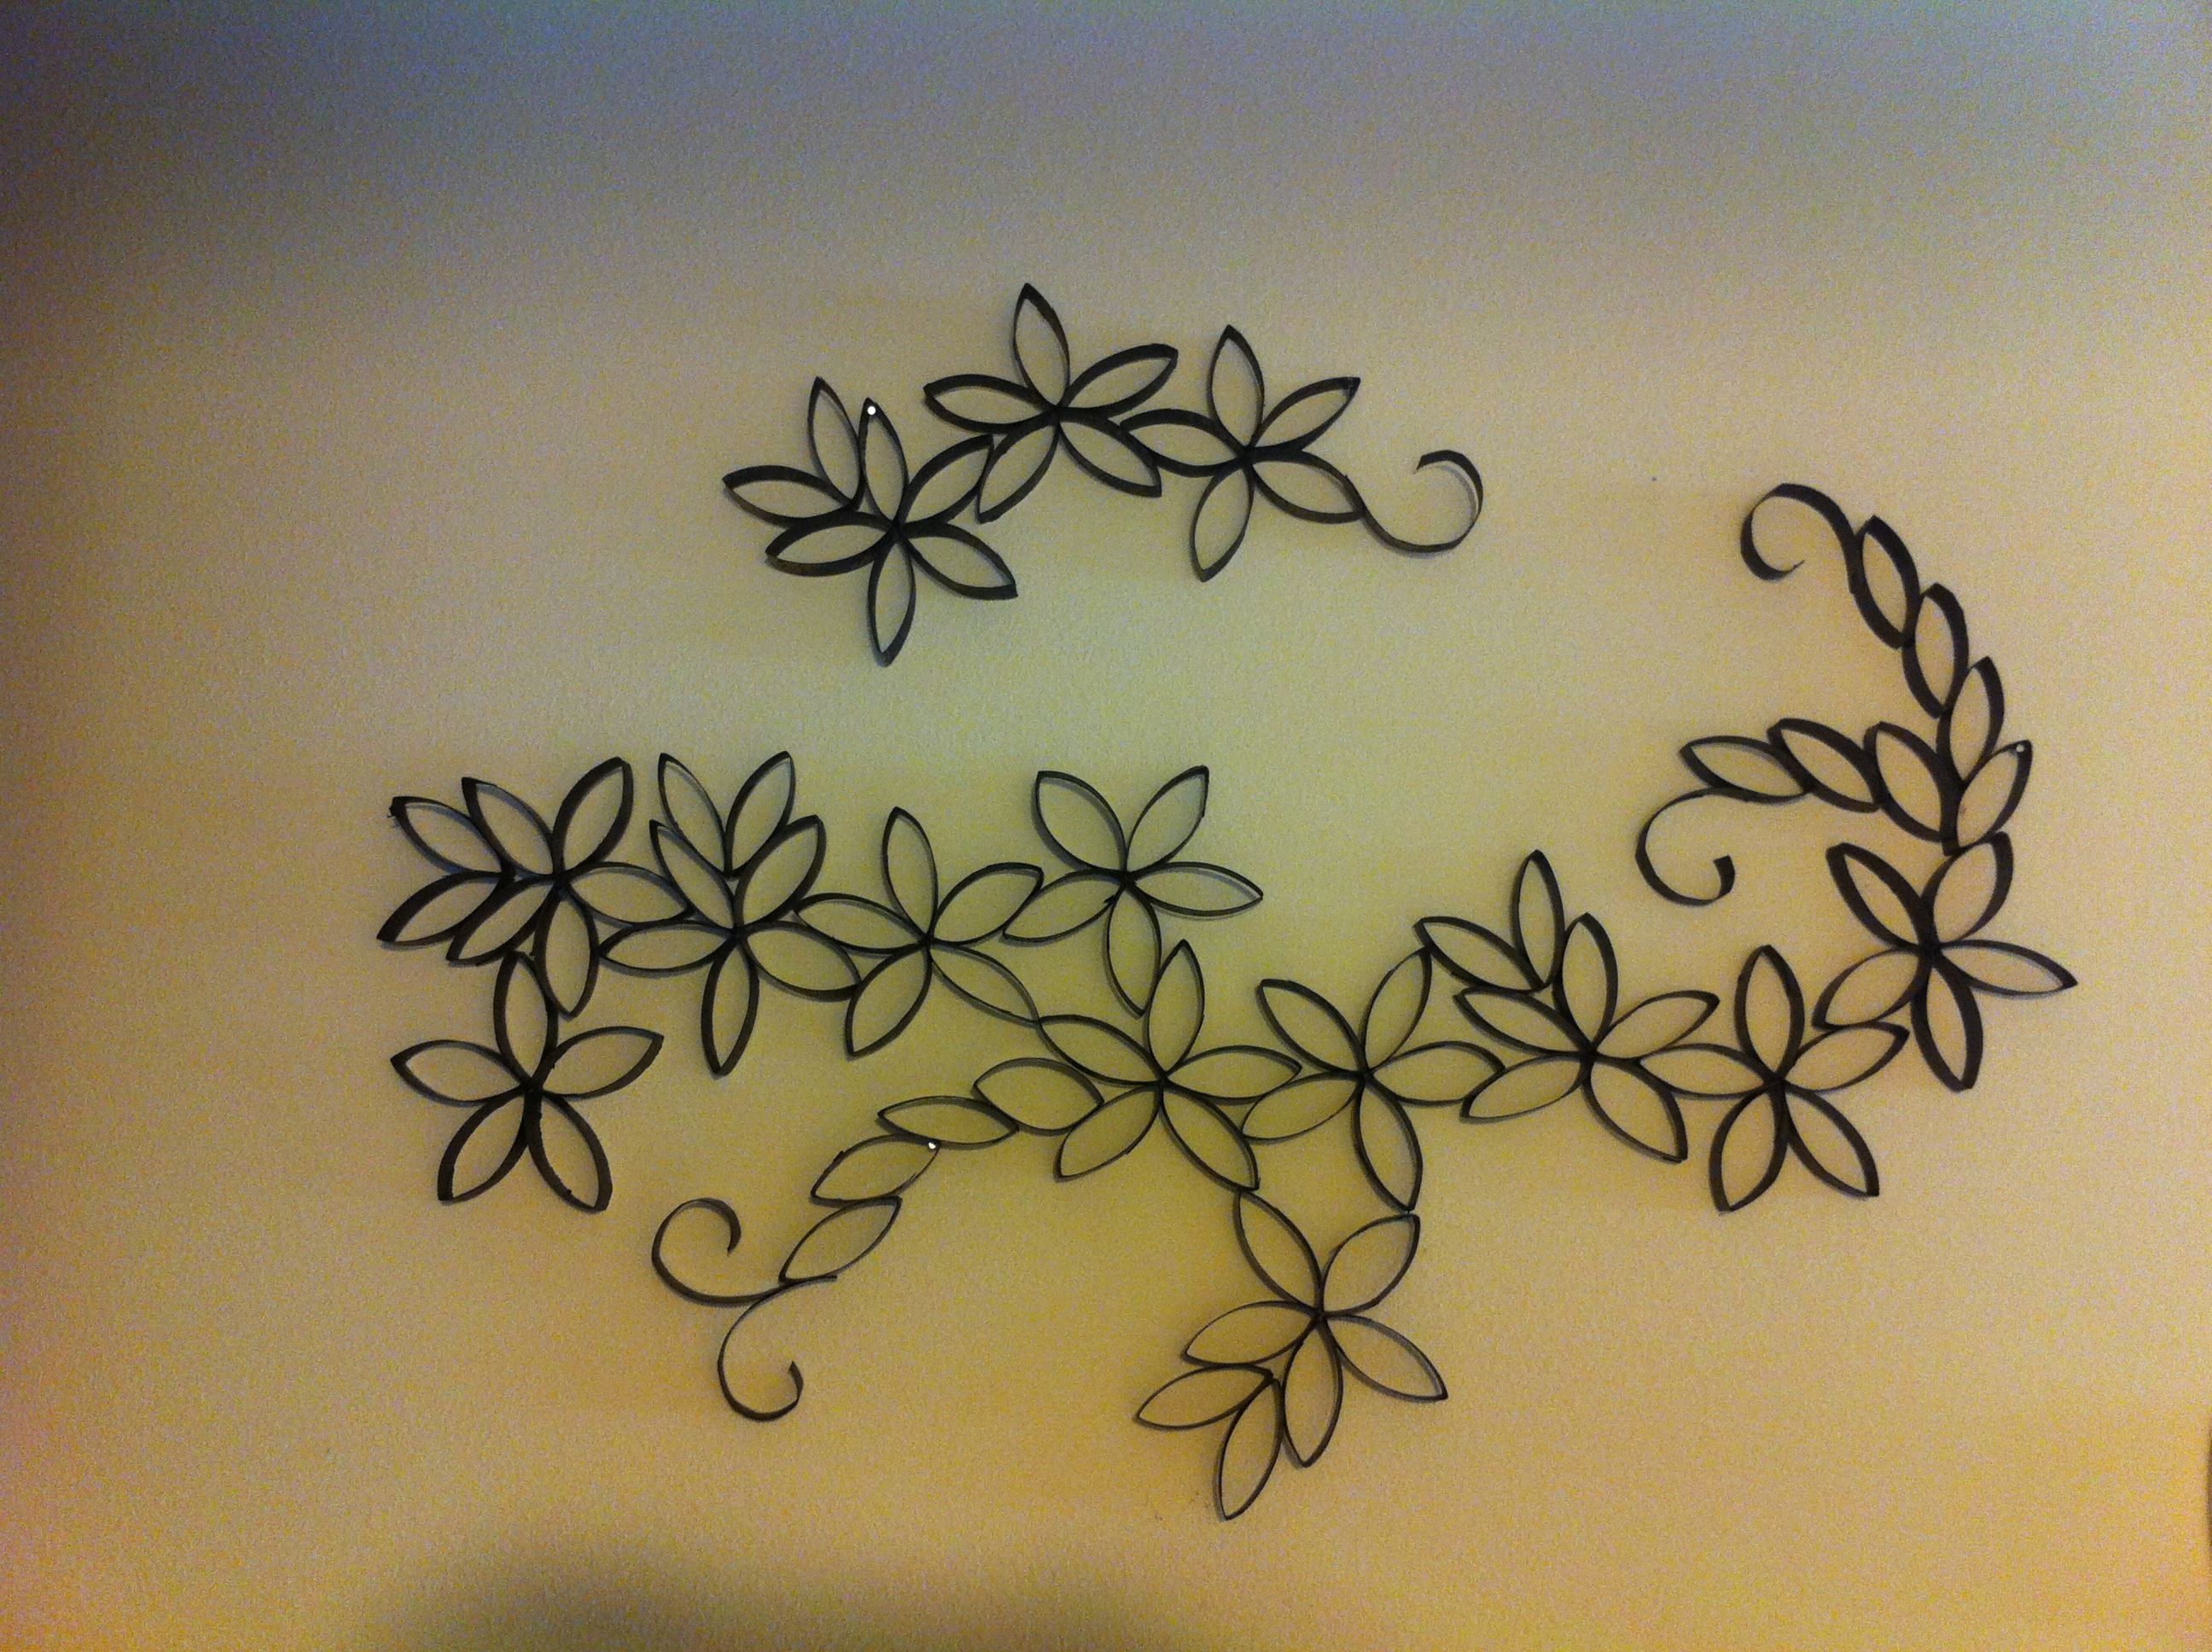 Cut Up Toilet Paper Rolls Glue Together Into Flowersdesign Spray